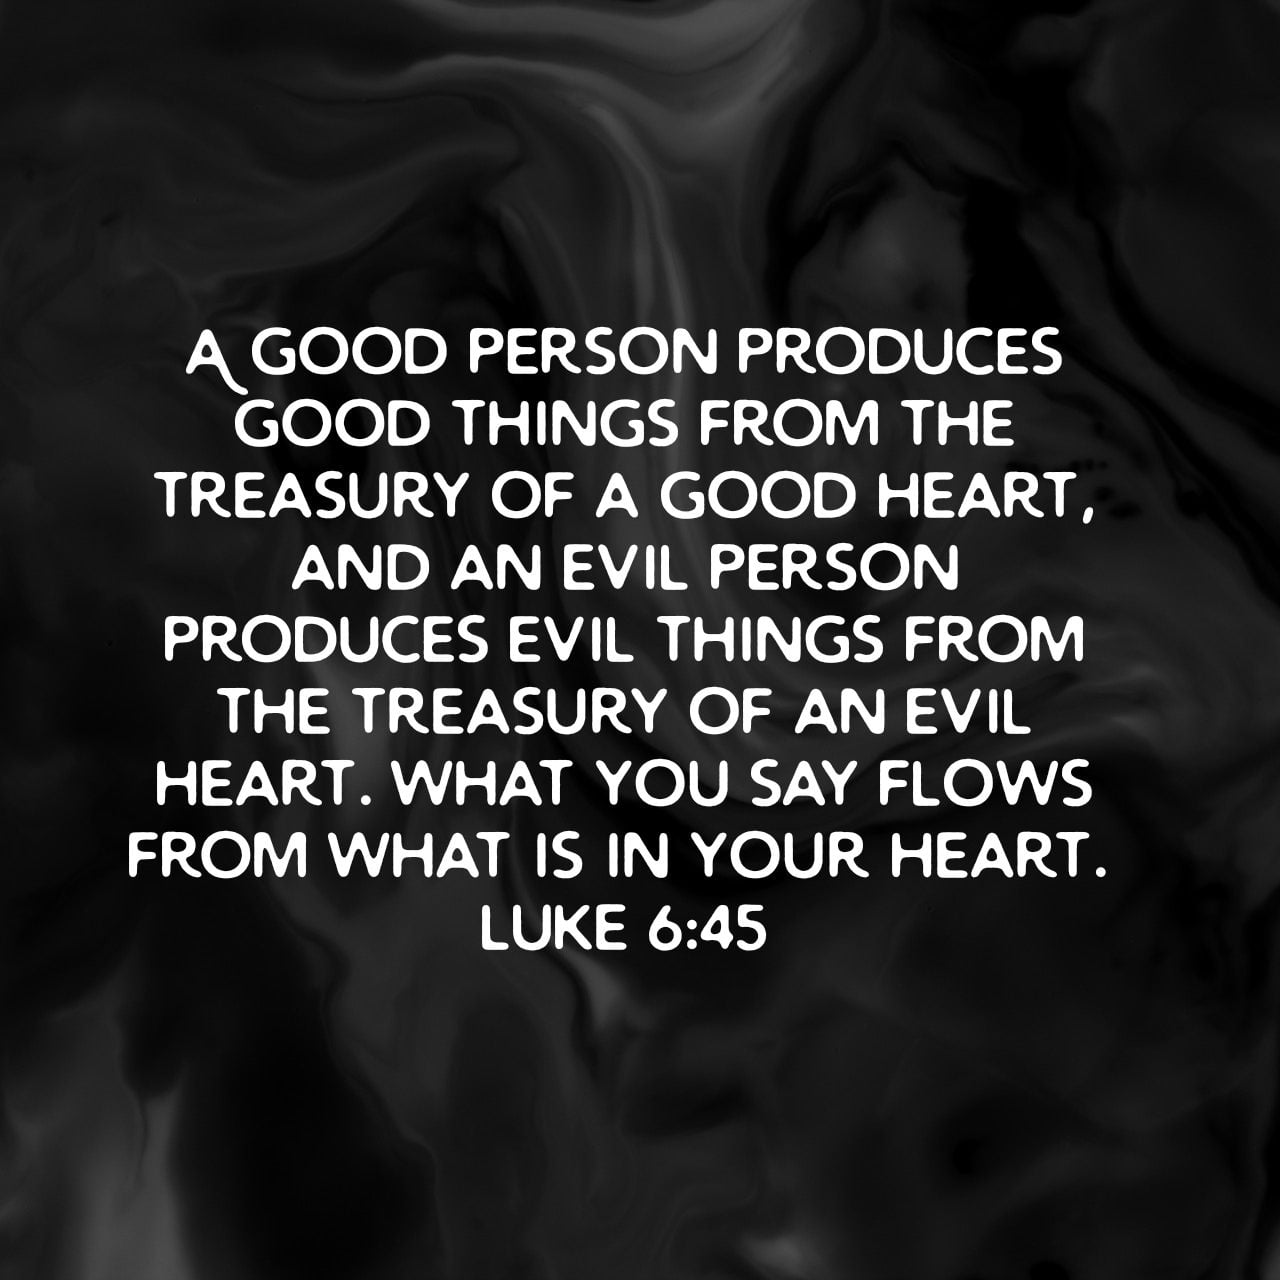 A good person produces good things from the treasury of a good heart, and an evil person produces evil things from the treasury of an evil heart. What you say flows from what is in your heart. - Luke 6:45 NLT